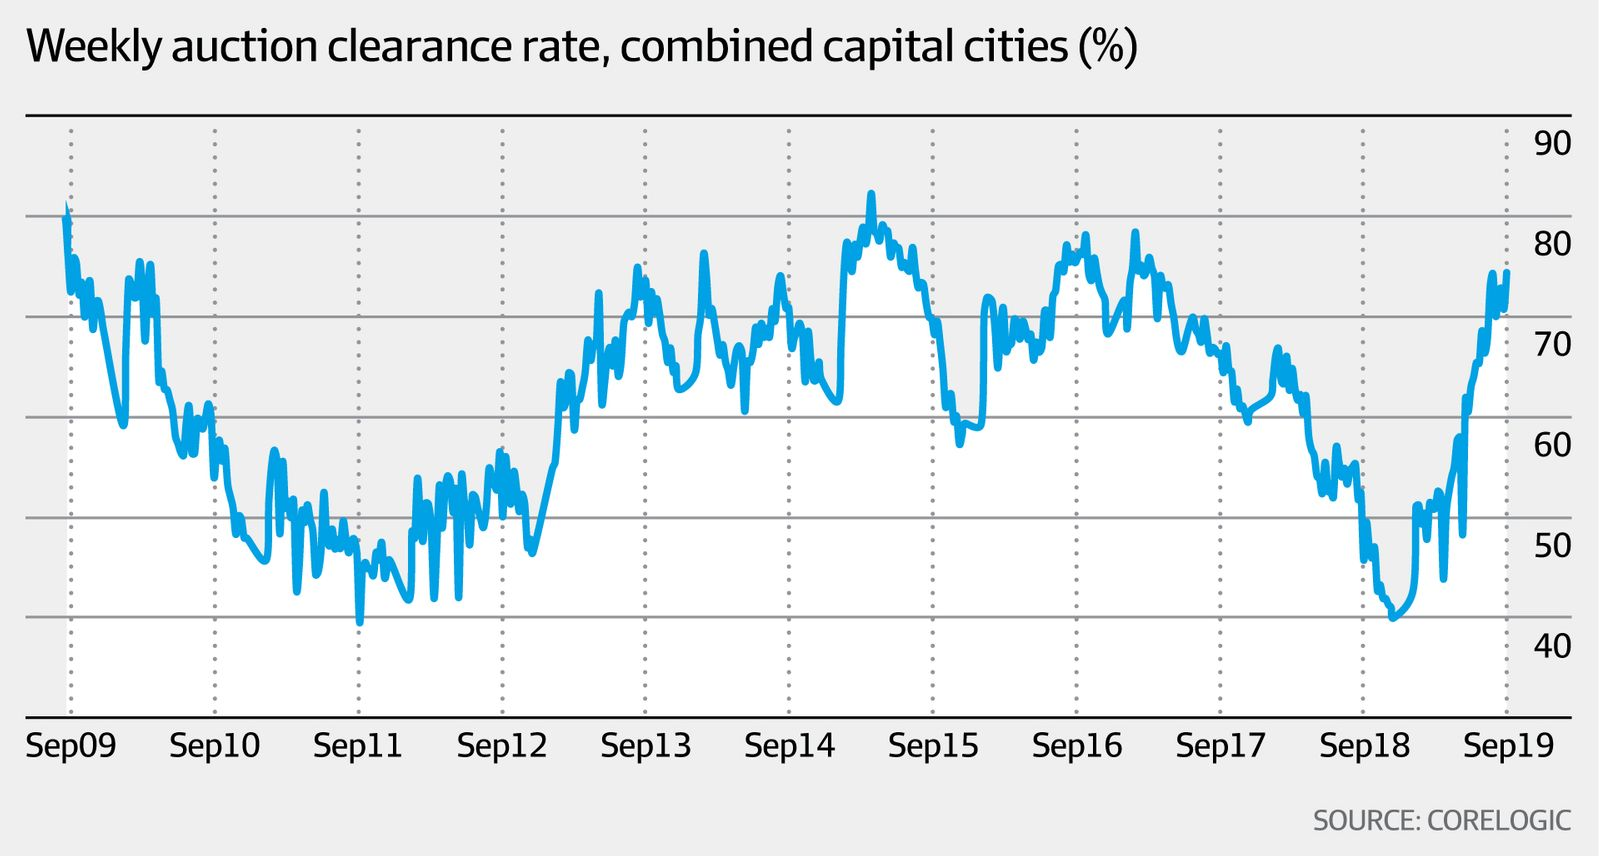 Weekly auction clearance rate, combined capital cities (CoreLogic, AFR)